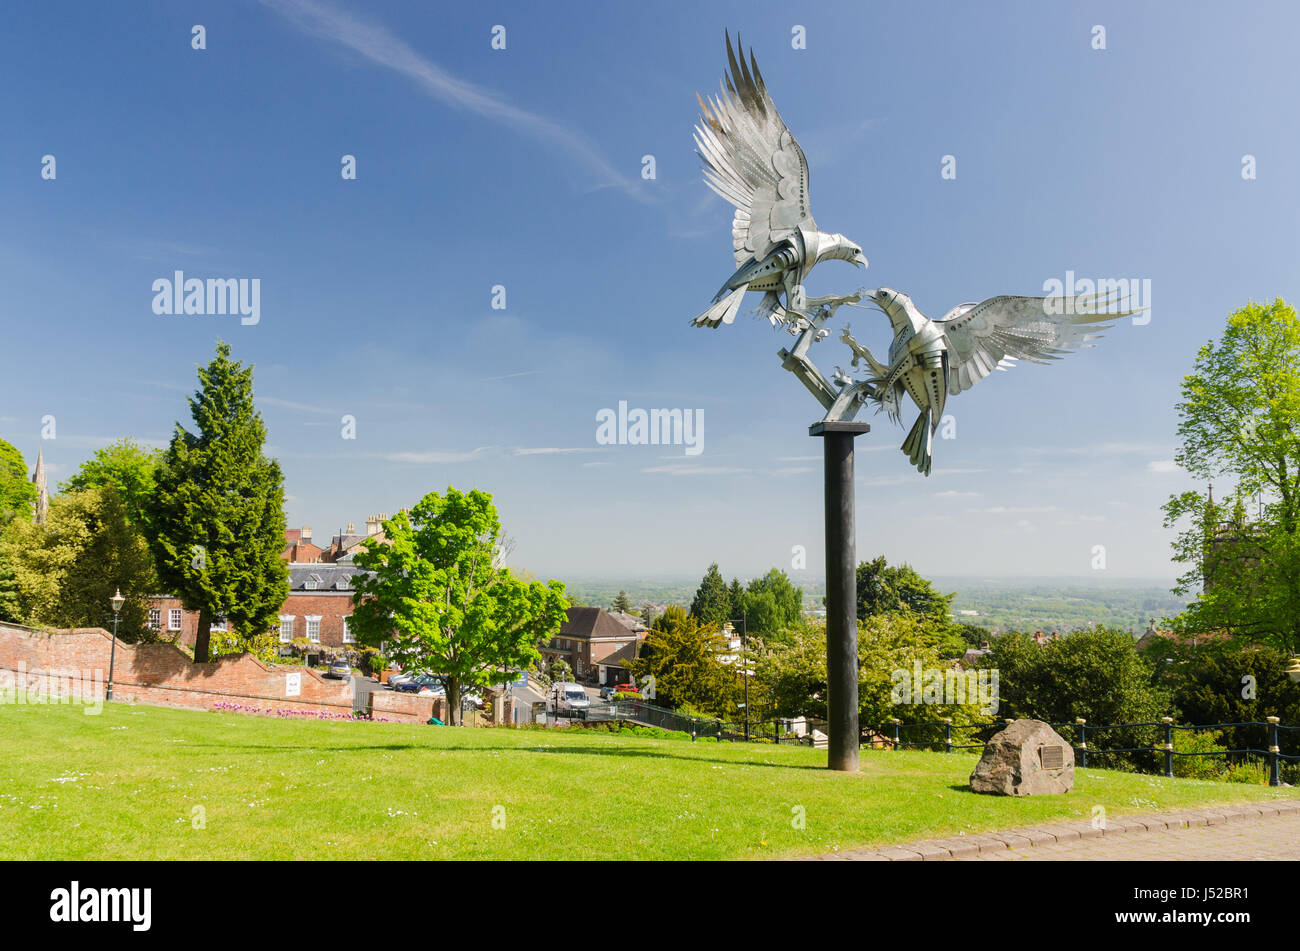 The diamond jubilee sculpture by Walenty Pytel in Rose Bank Gardens in Great Malvern, Worcestershire - Stock Image